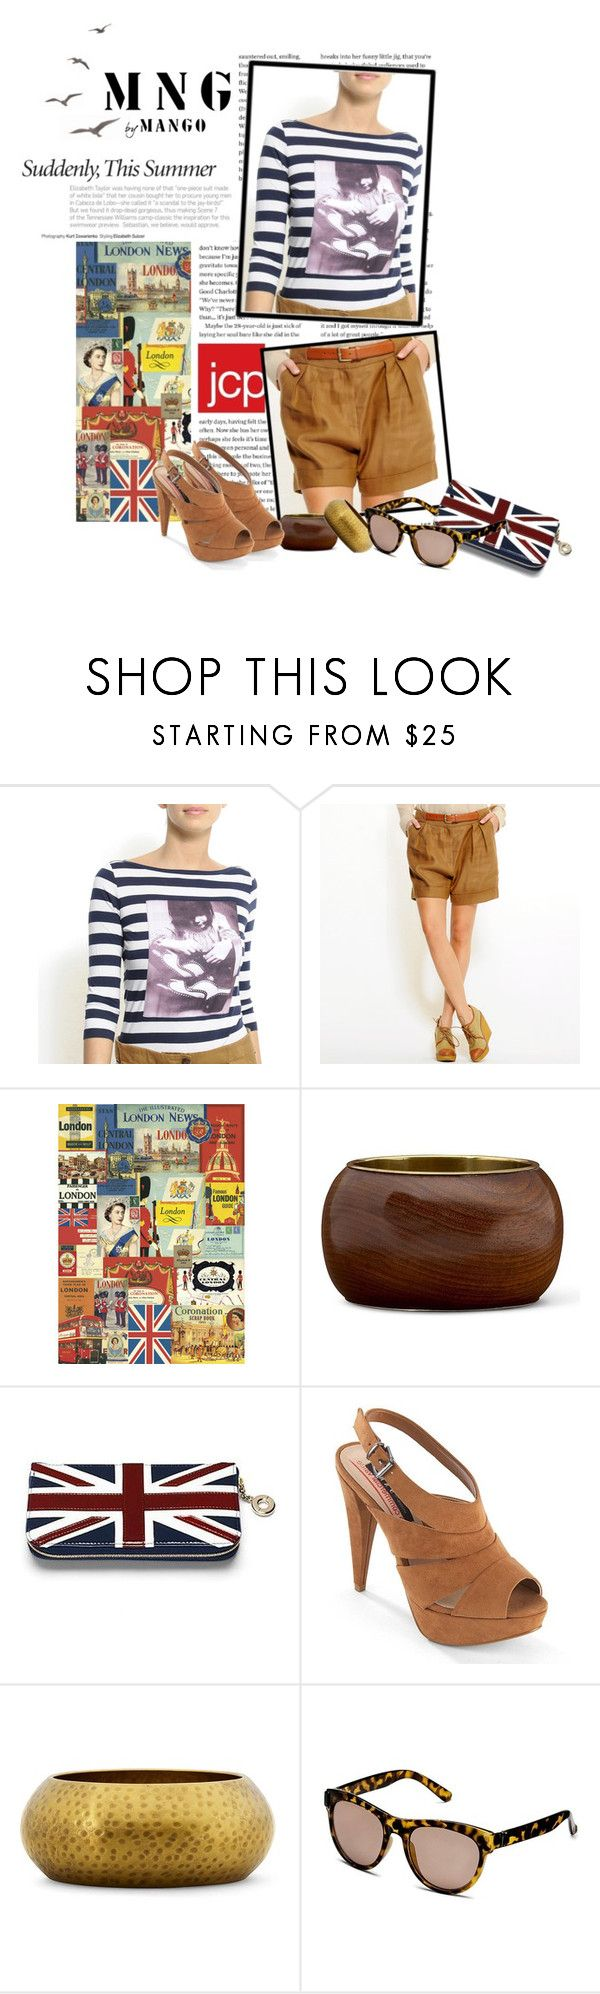 """""""From Europe to You: MNG by Mango at jcpenney (:"""" by cherrybomb101 ❤ liked on Polyvore featuring MNG by Mango, Cavallini, Aspinal of London, jcpenney, european and mng by mango"""